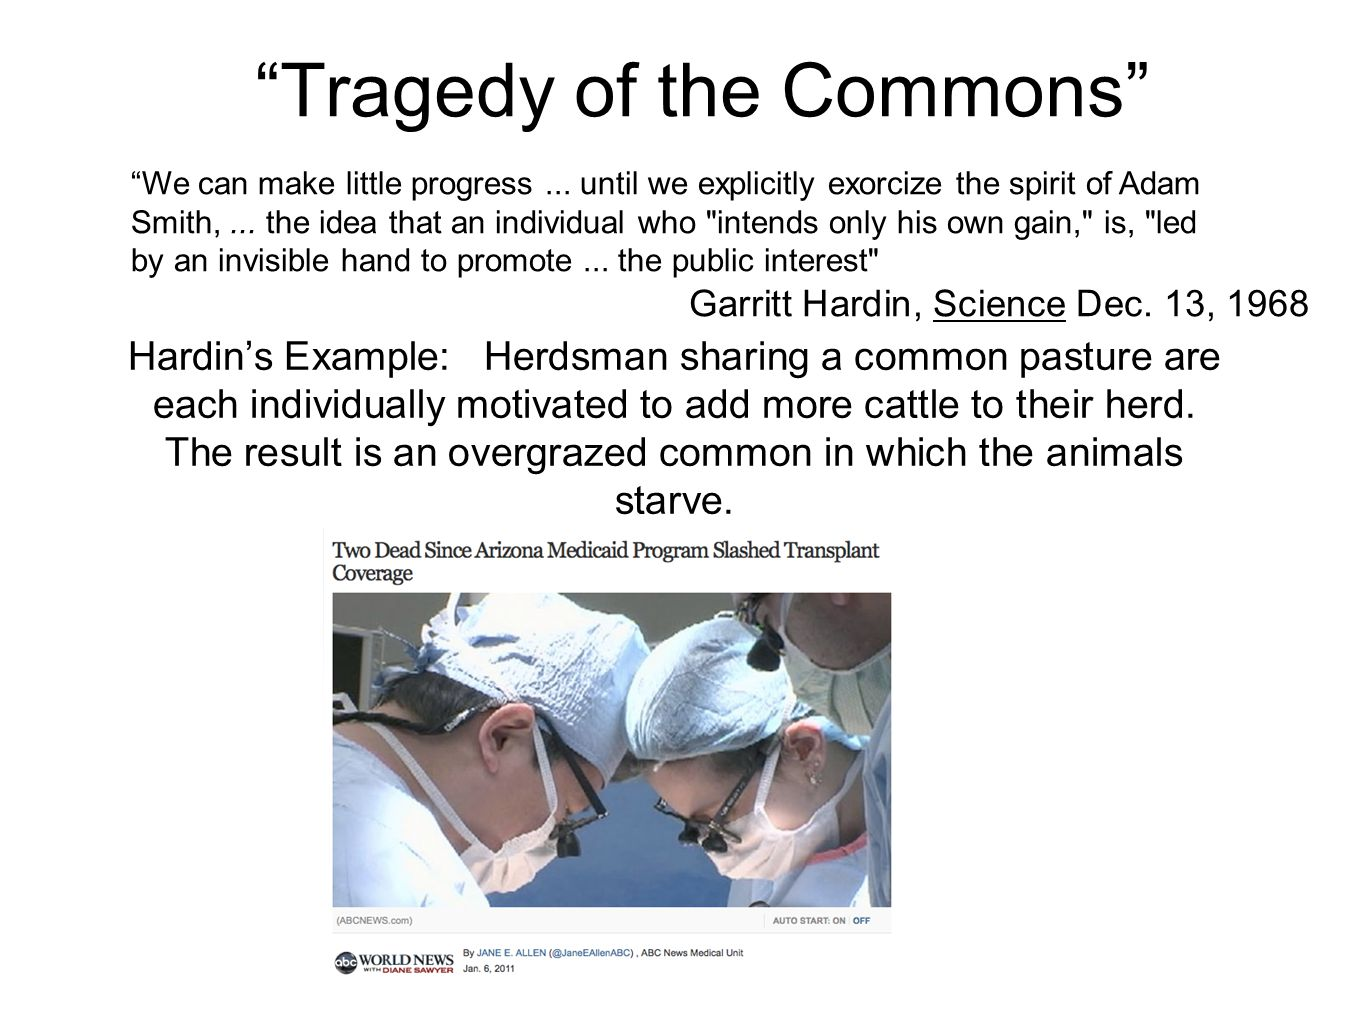 Tragedy of the Commons Hardin's Example: Herdsman sharing a common pasture are each individually motivated to add more cattle to their herd.